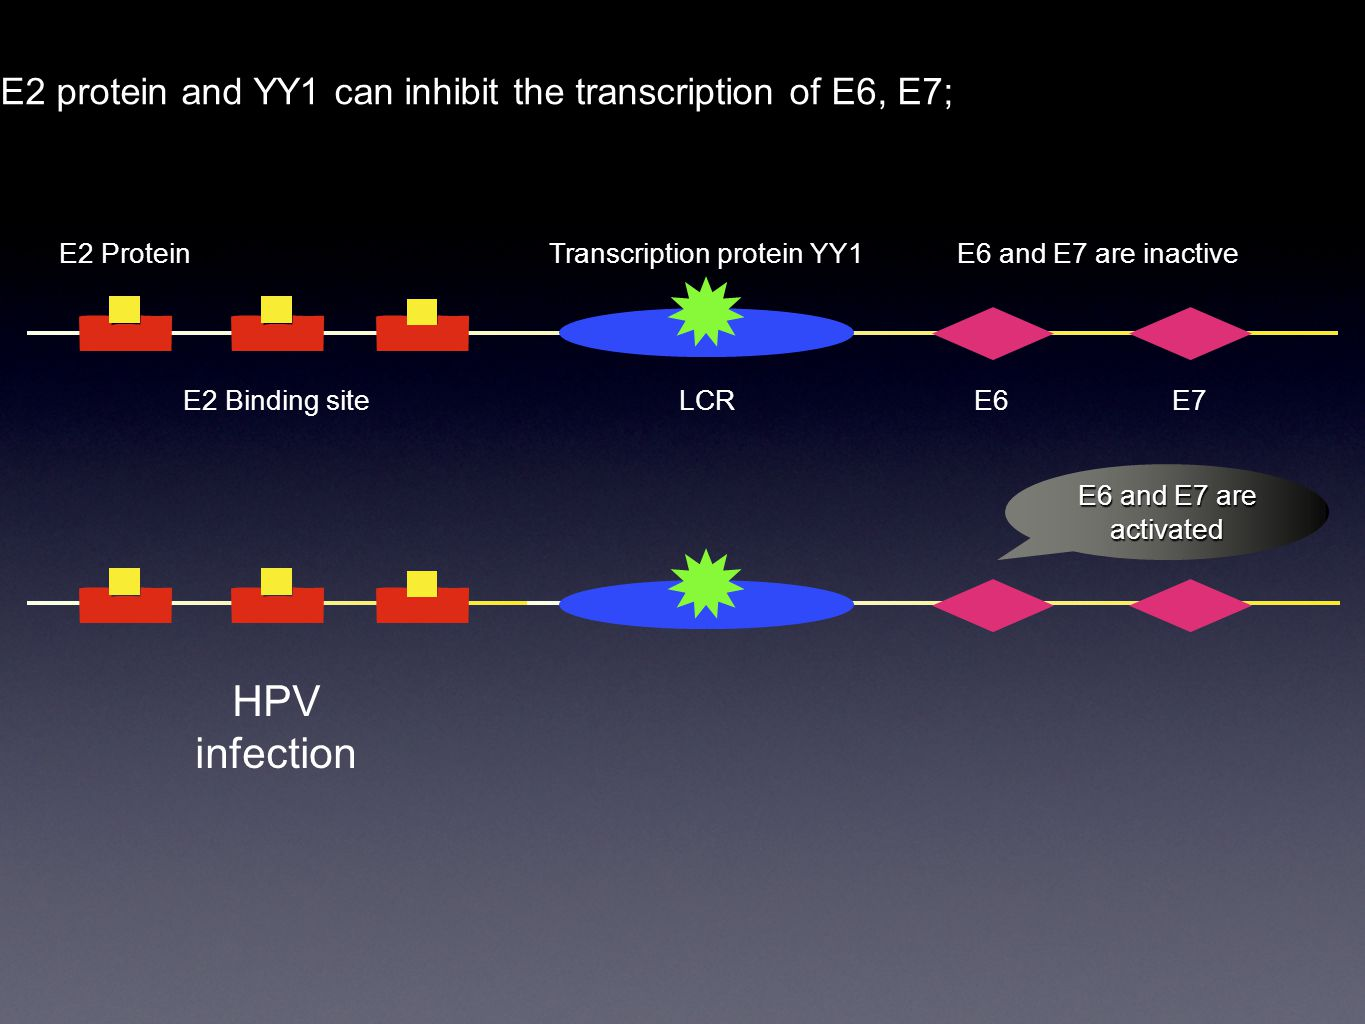 E2 protein and YY1 can inhibit the transcription of E6, E7; E2 Binding siteLCR E2 ProteinTranscription protein YY1 E6E7 E6 and E7 are inactive E6 and E7 are activated HPV infection